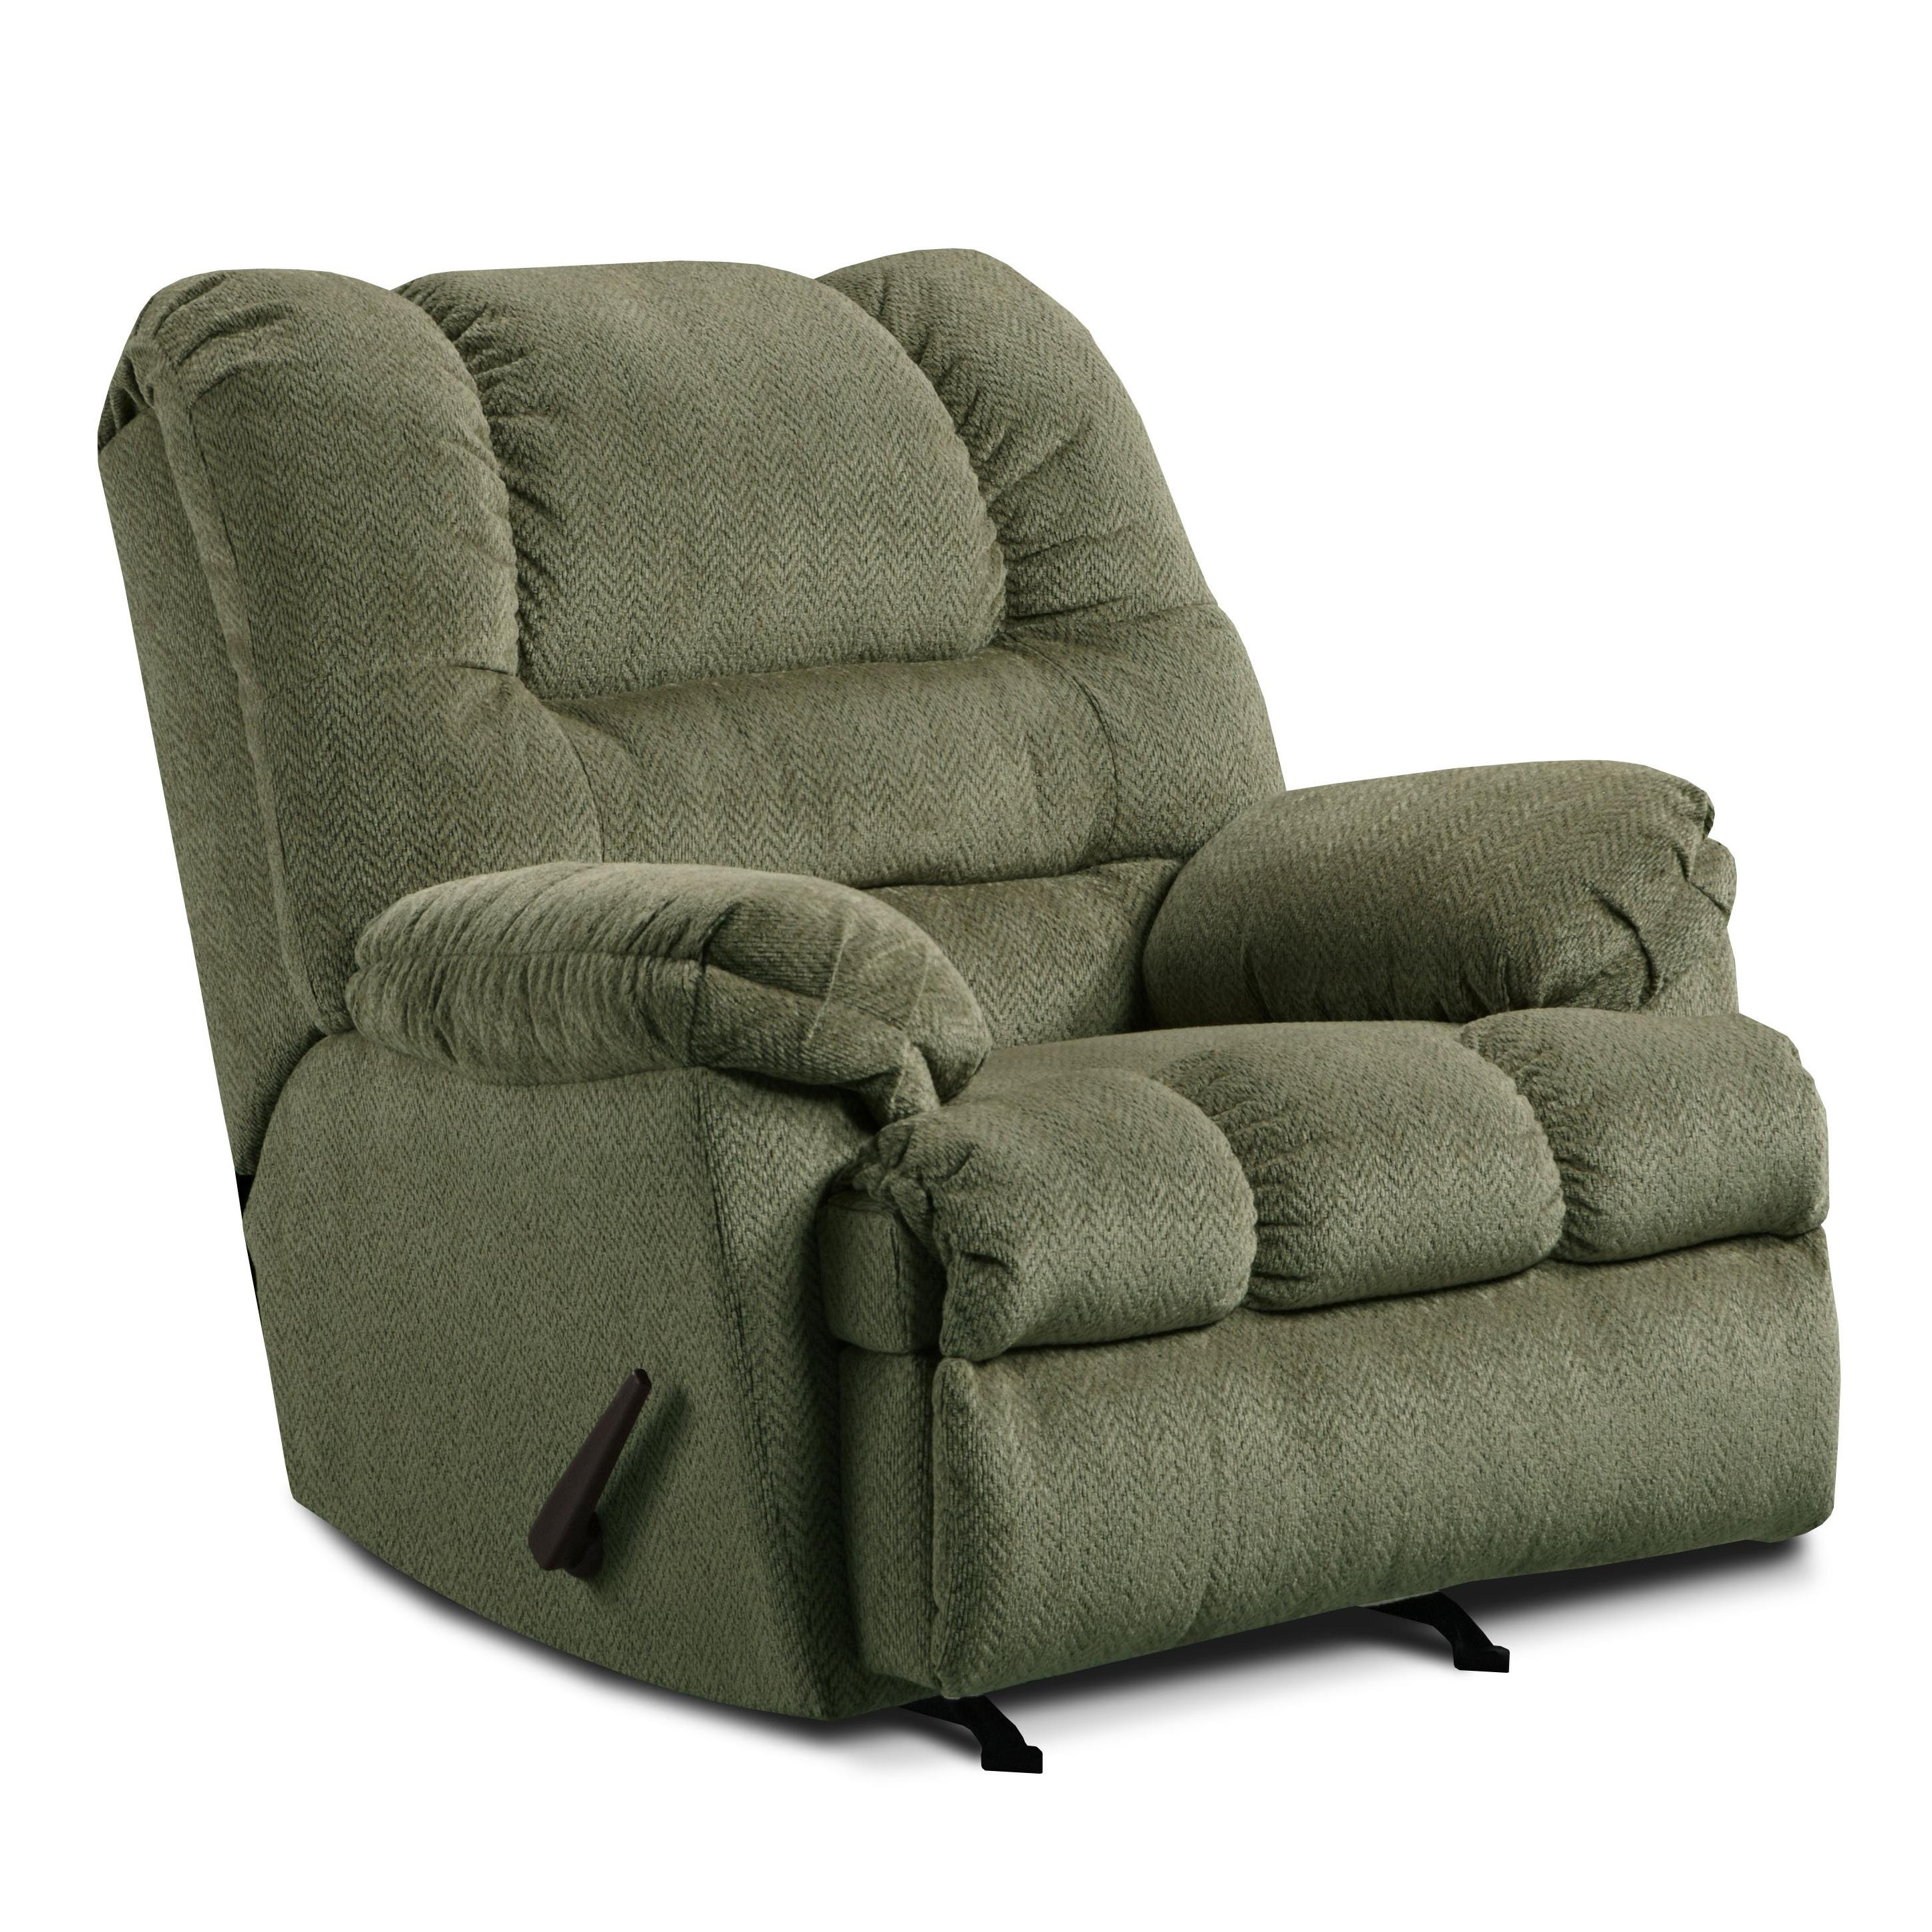 United Furniture Industries 600 Casual Oversized Rocker Recliner - Item Number: 600 P